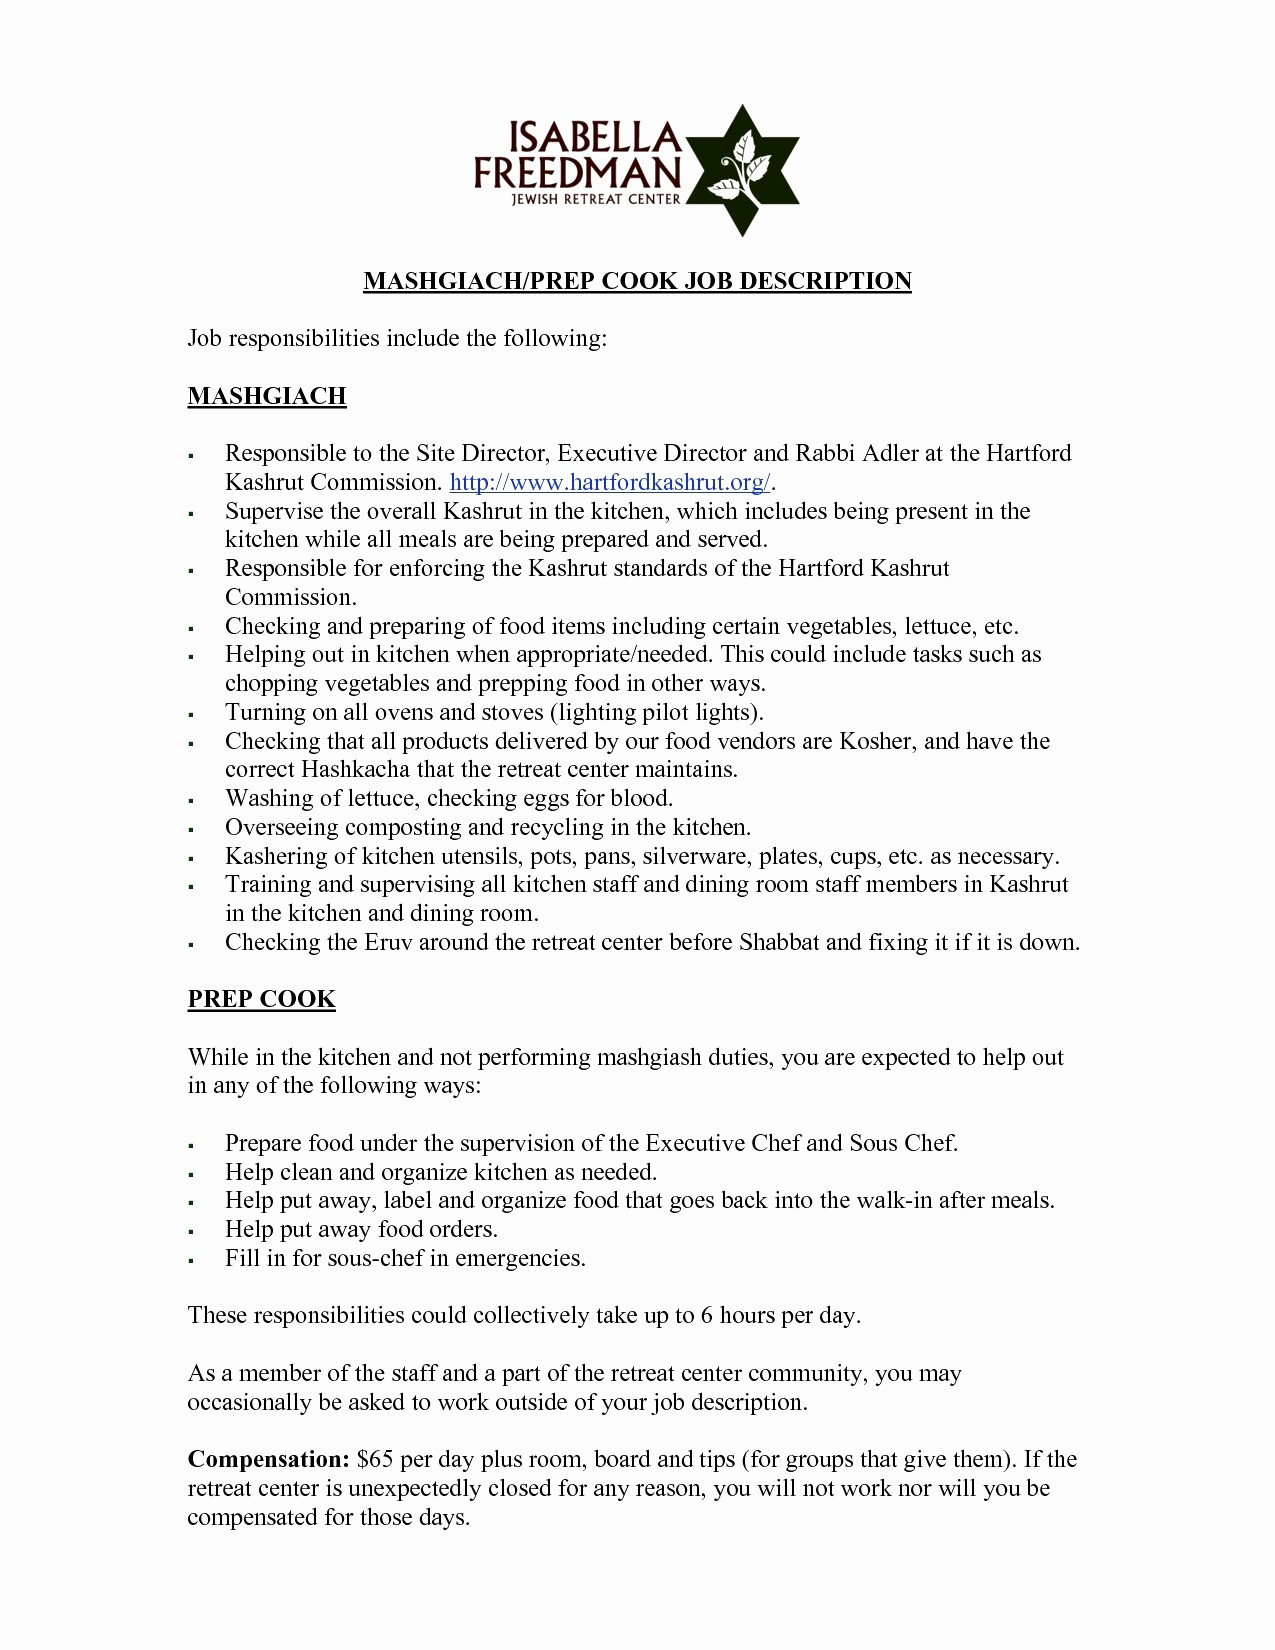 Engineering Cover Letter Template - Motivation Letter for Engineering Job New Example Resume Cover